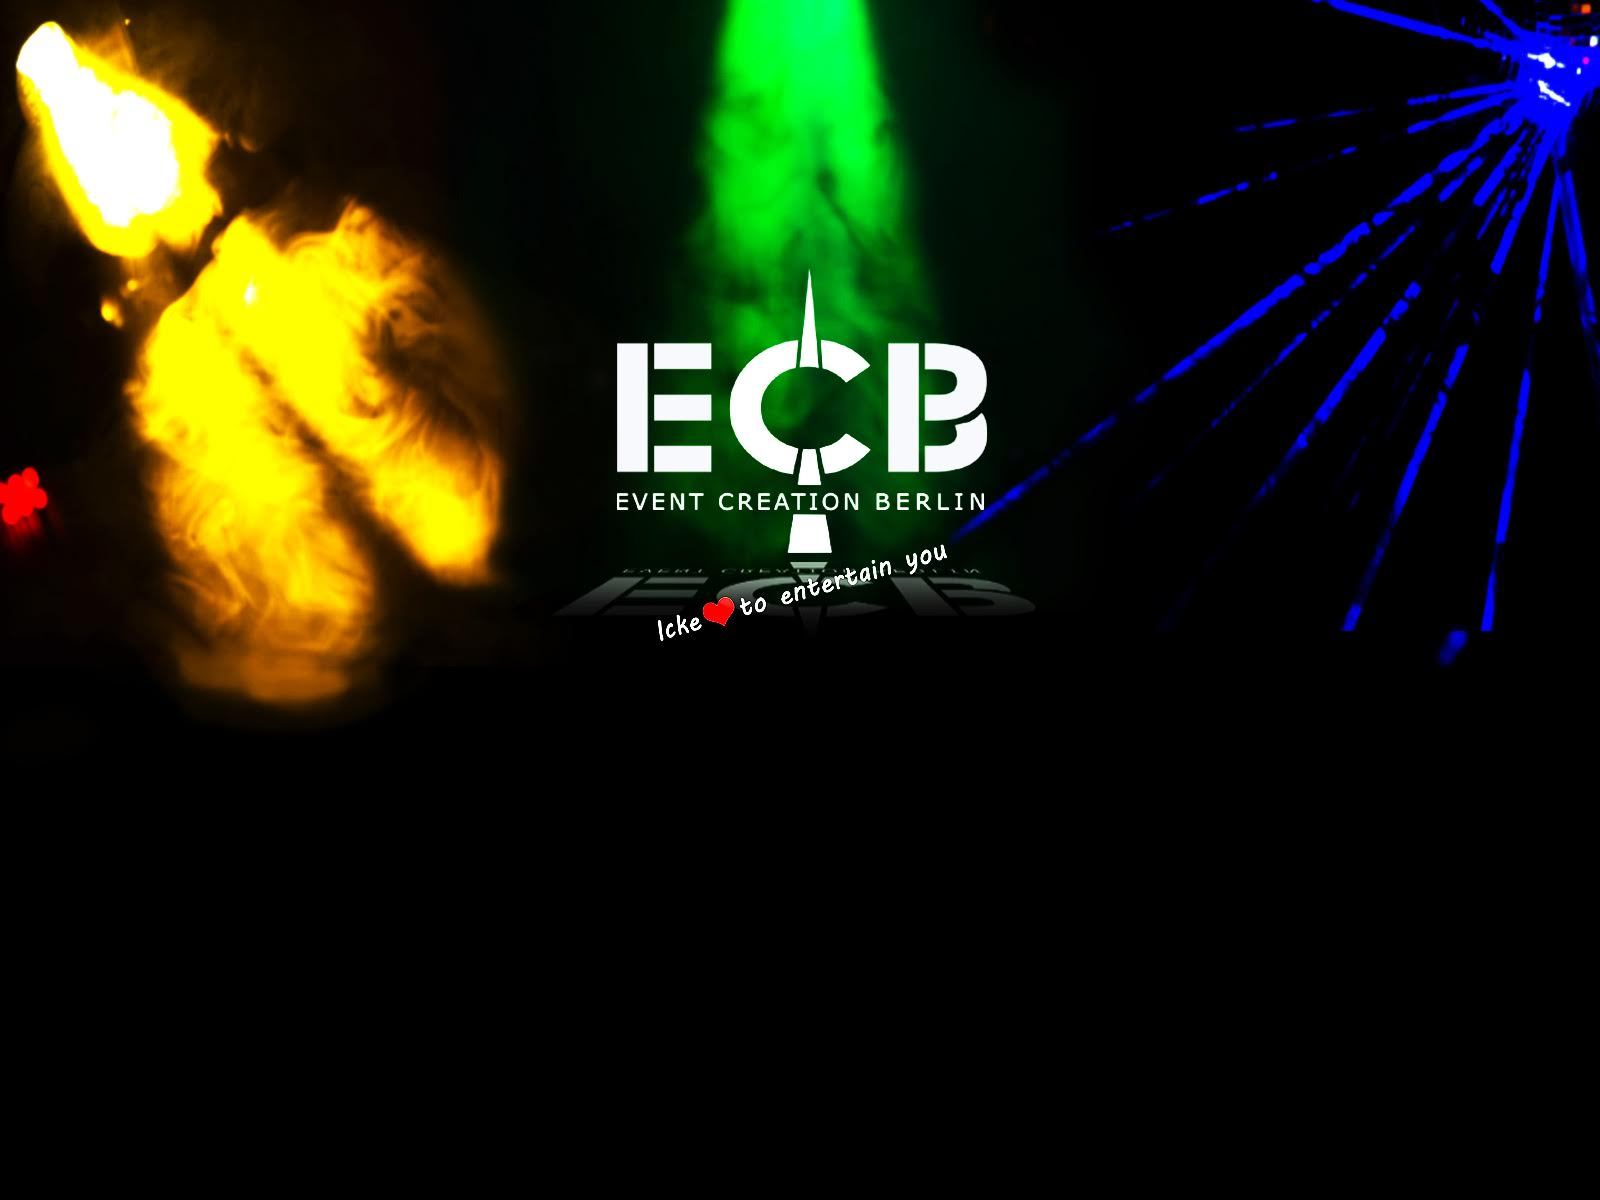 ECB - EventCreationBerlin